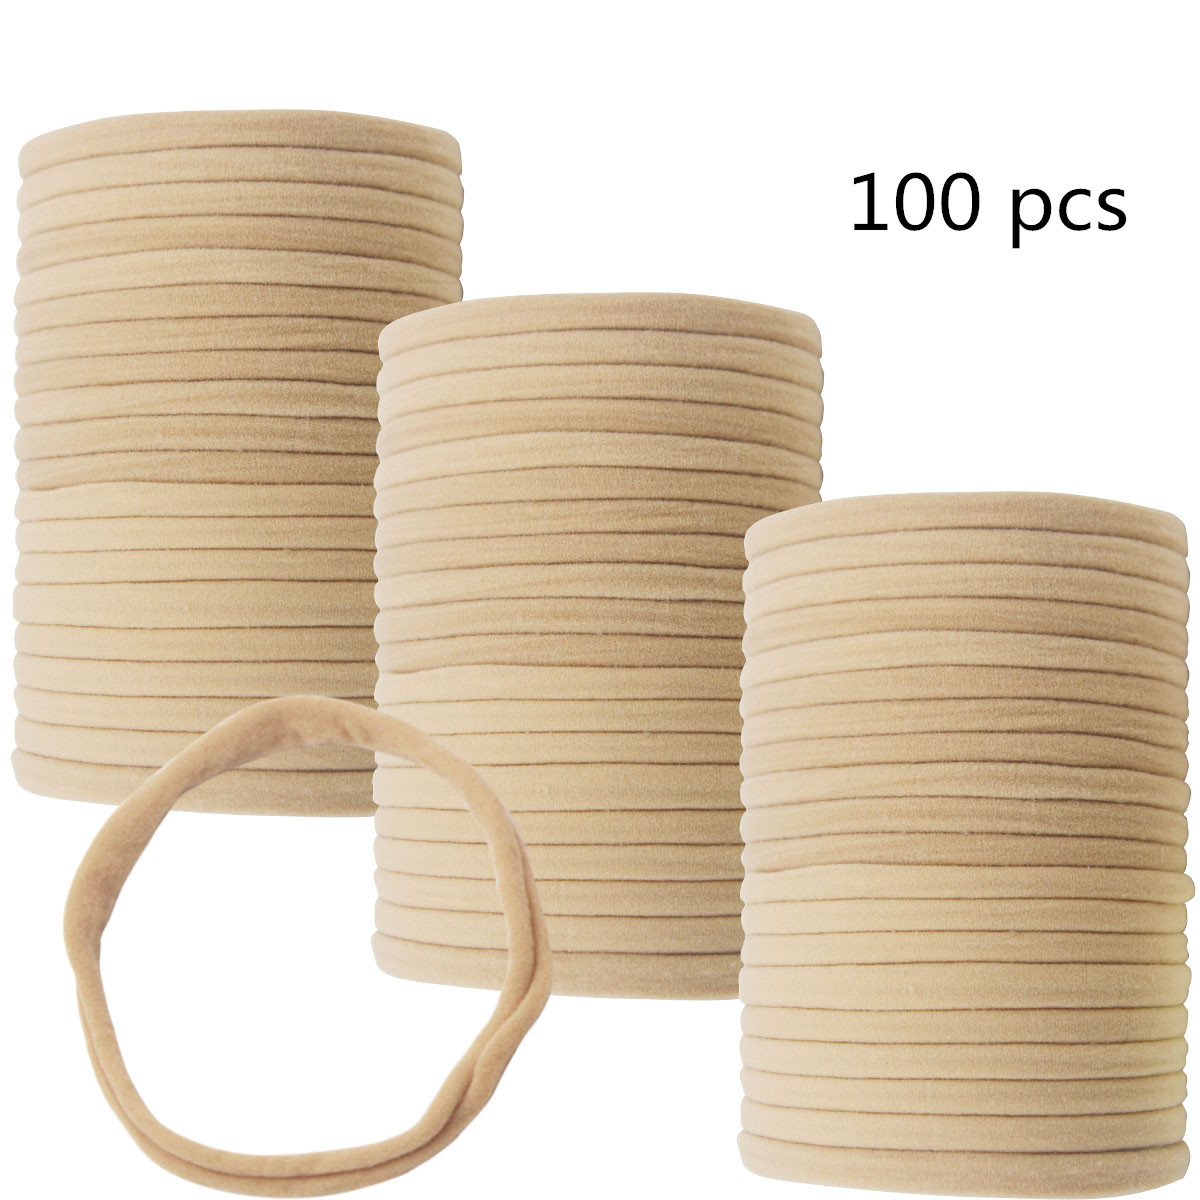 100Pcs Premium Quality Nylon Nude Headbands - Soft And Stretchy For Newborns, Baby And Toddlers Perfect For DIY